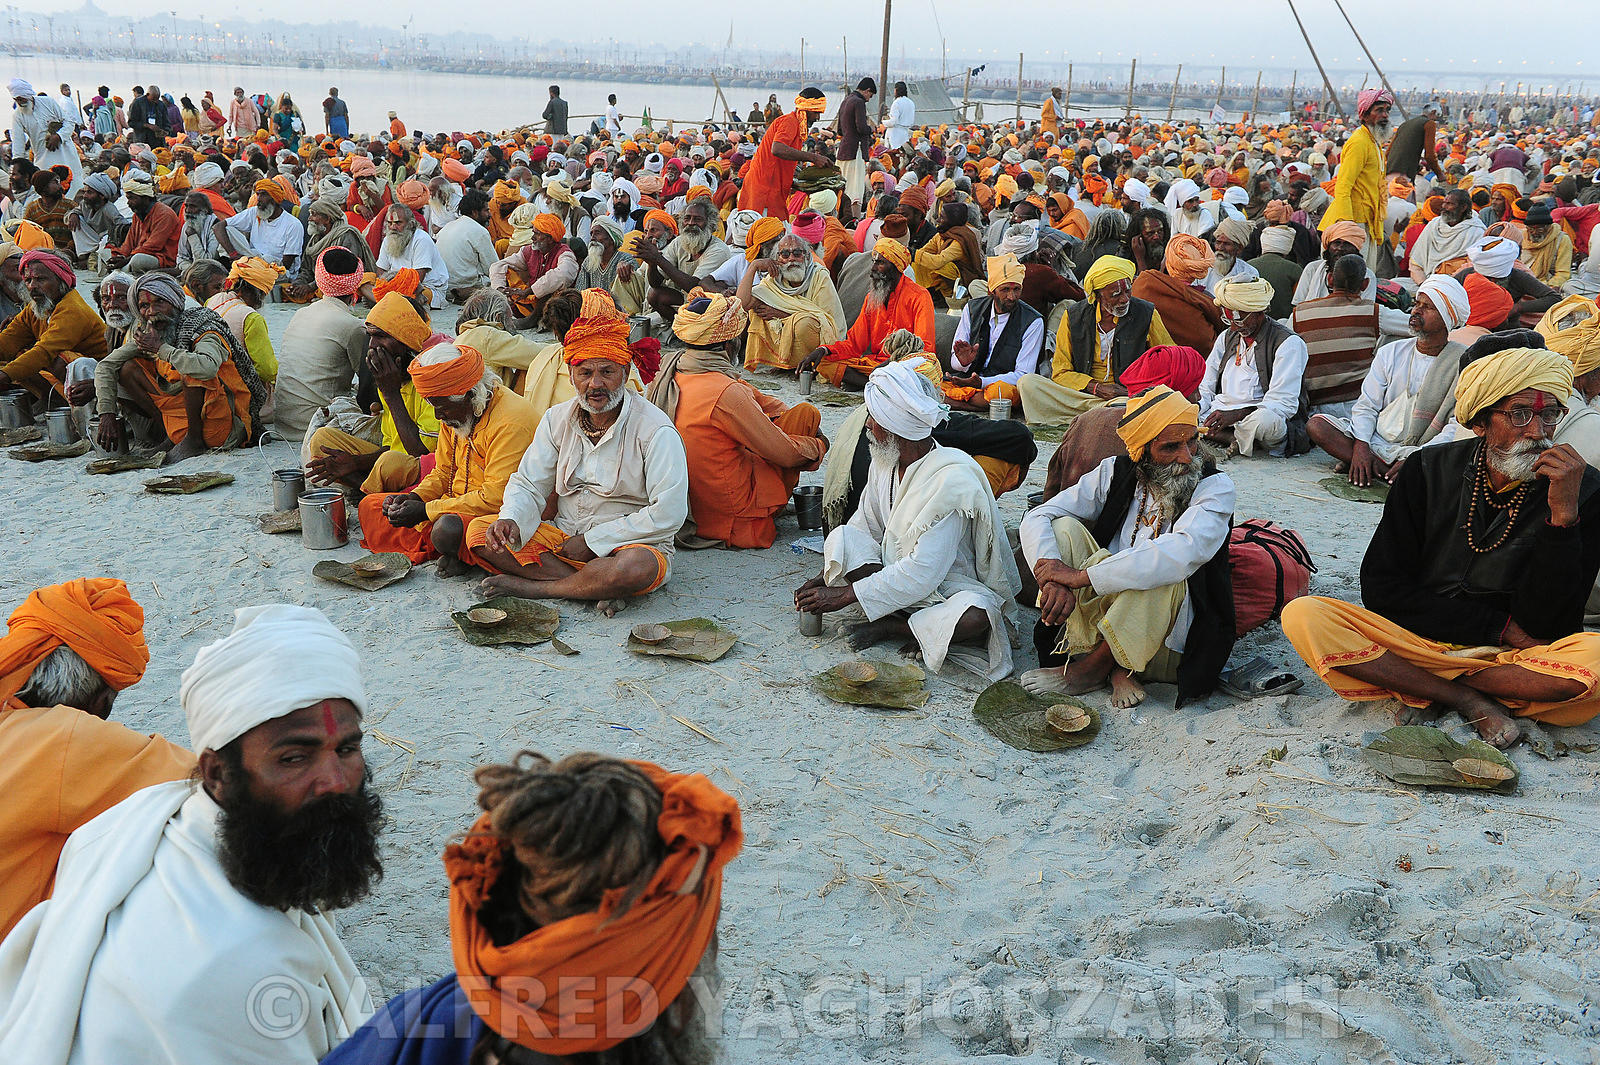 kumbh Mela Hindu pilgrimage logistics and daily life 2013..Kumbh Mela hindous logistique du pèlerinage et vie quotidienne 2013.